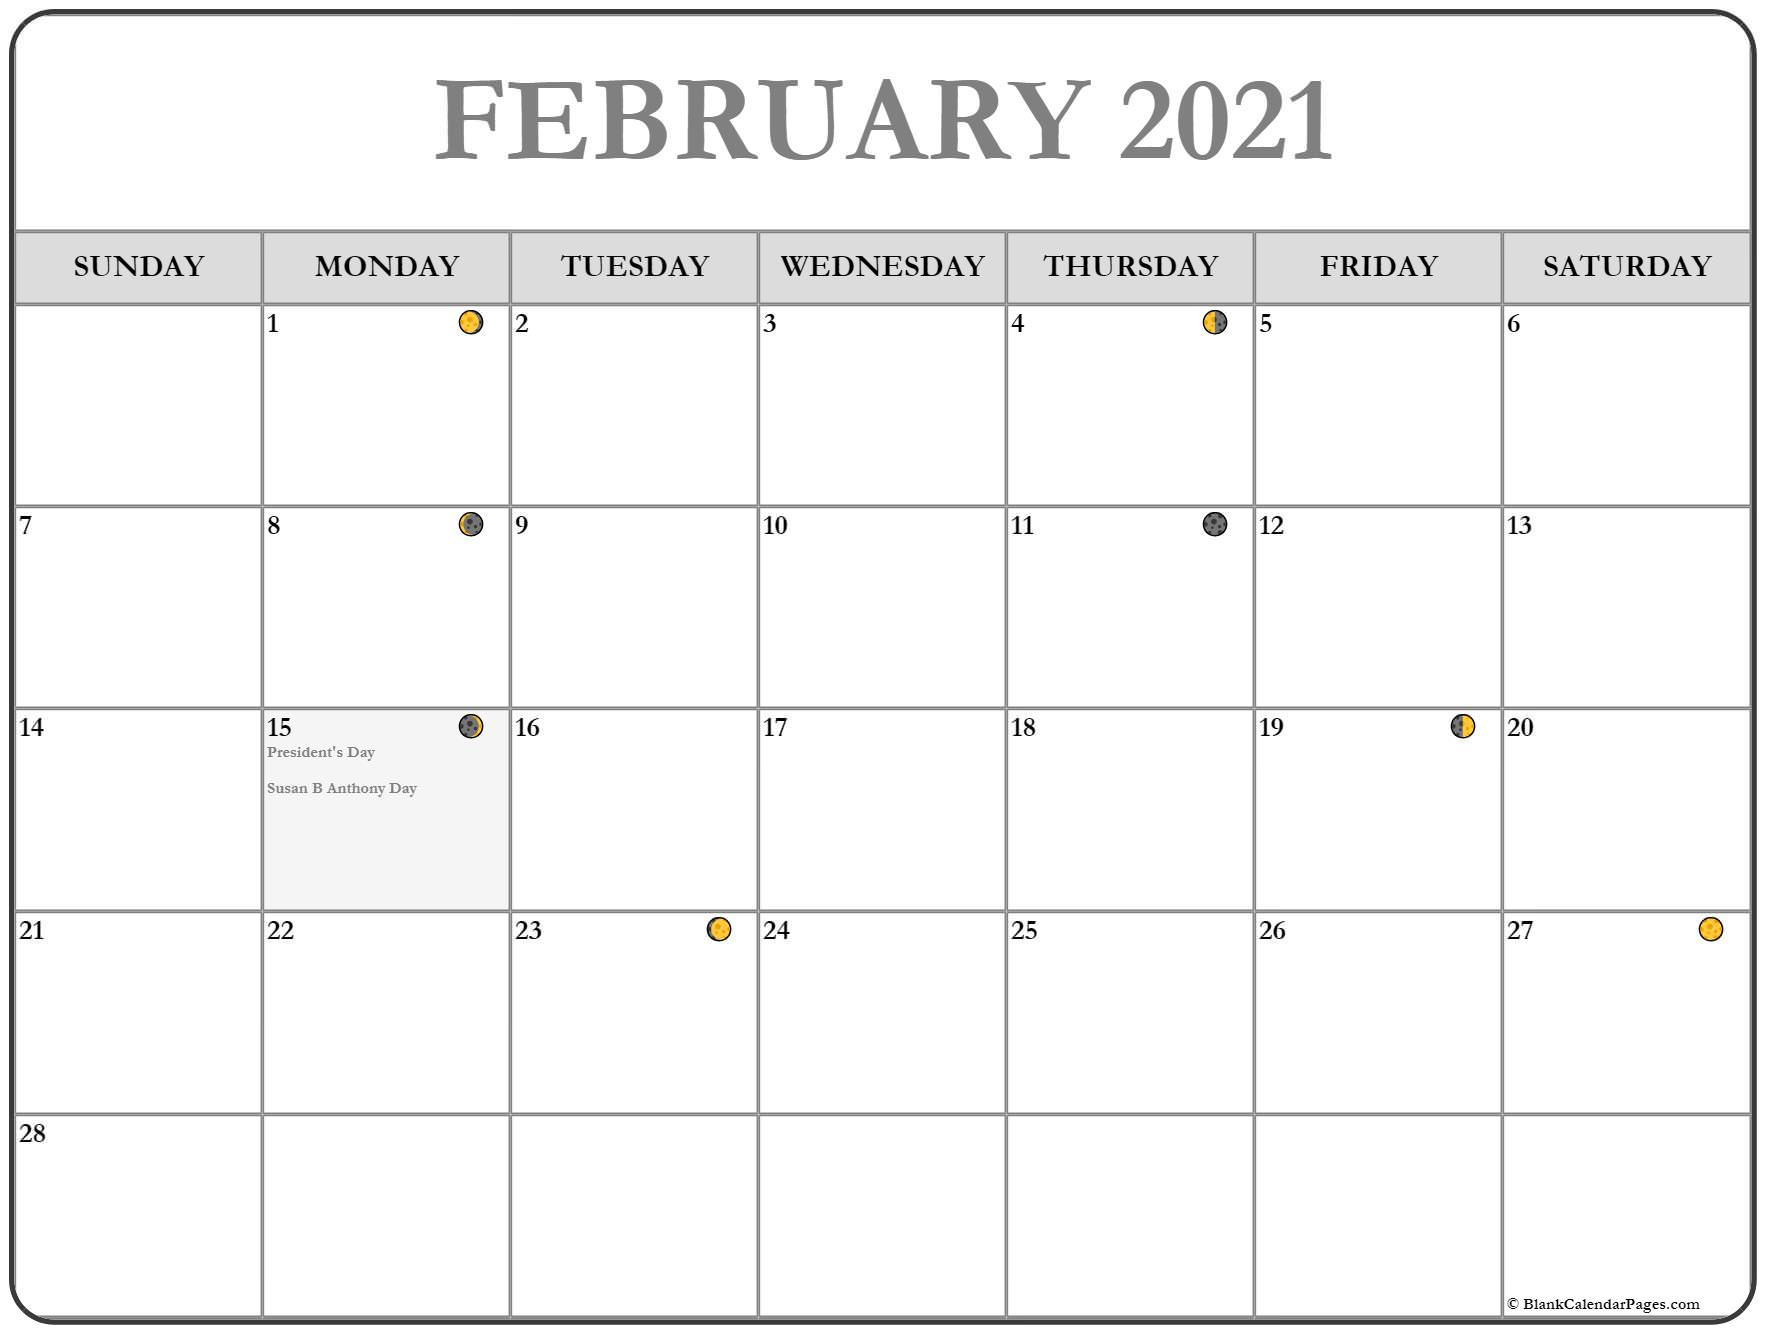 February 2021 calendar moon phases printable